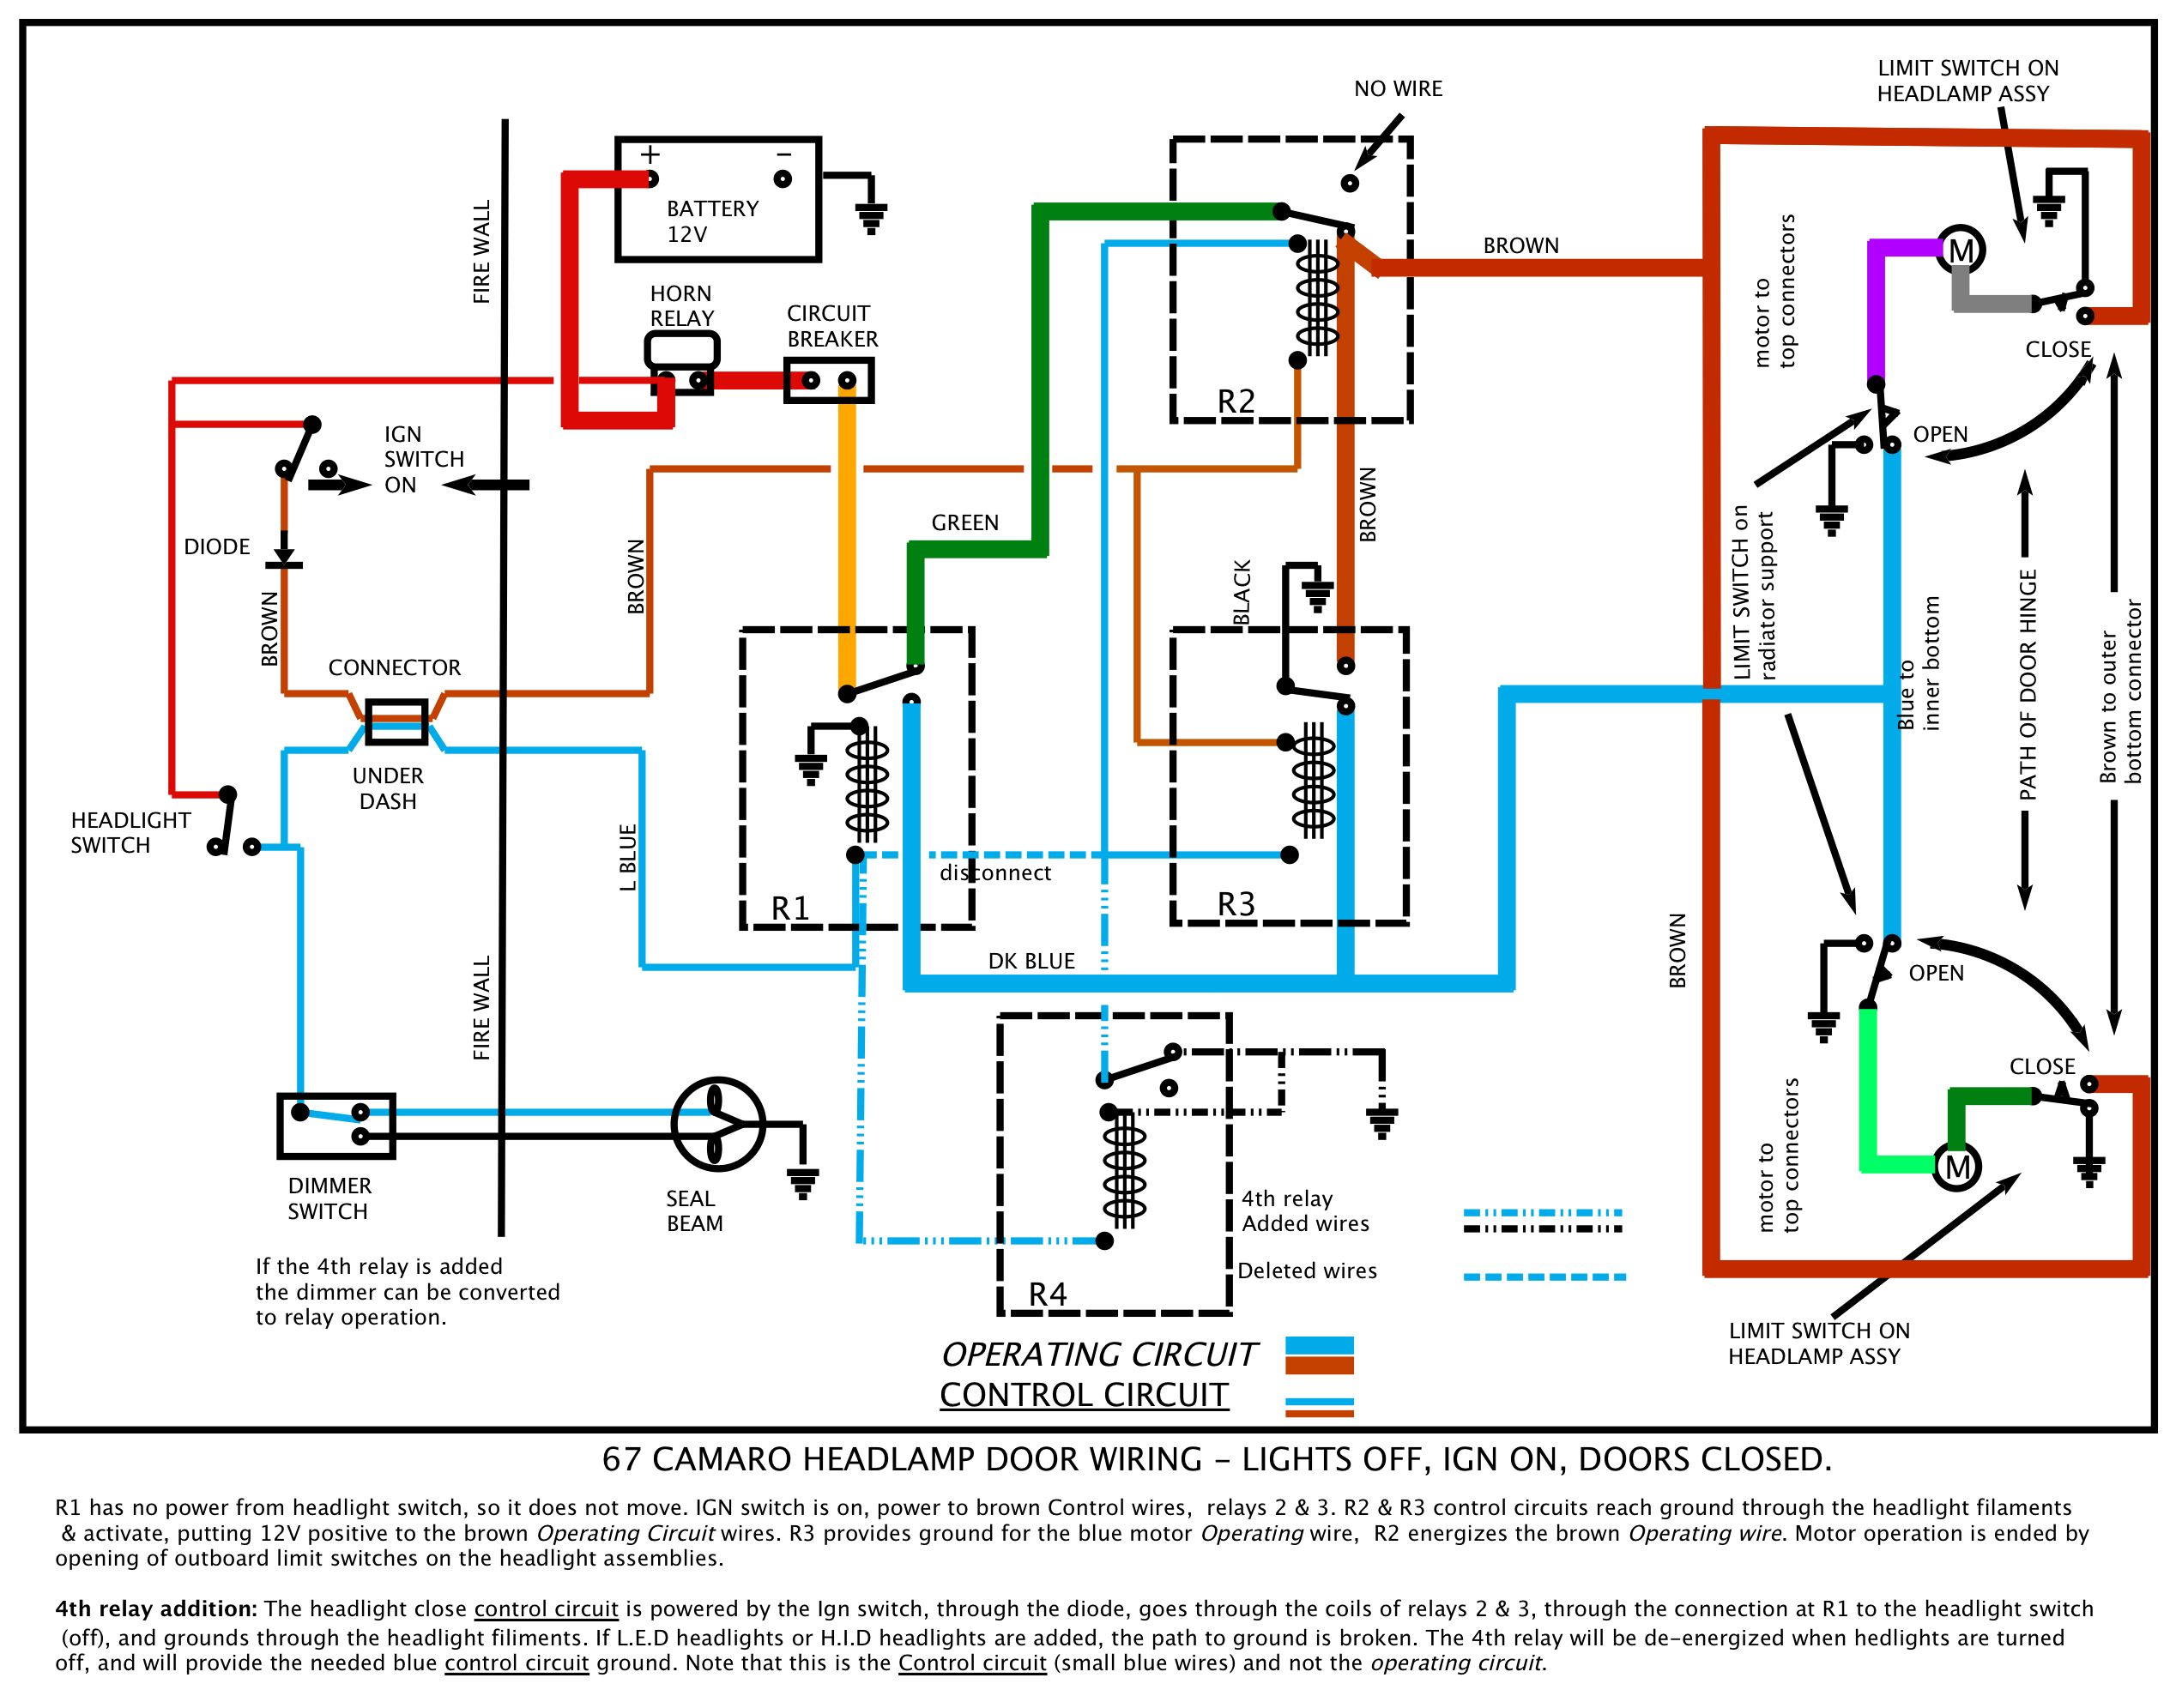 67_RS_Ign_on_4th_relay 1967 camaro wiring diagram pdf 68 camaro engine wiring diagram 67 camaro wiring diagram pdf at reclaimingppi.co